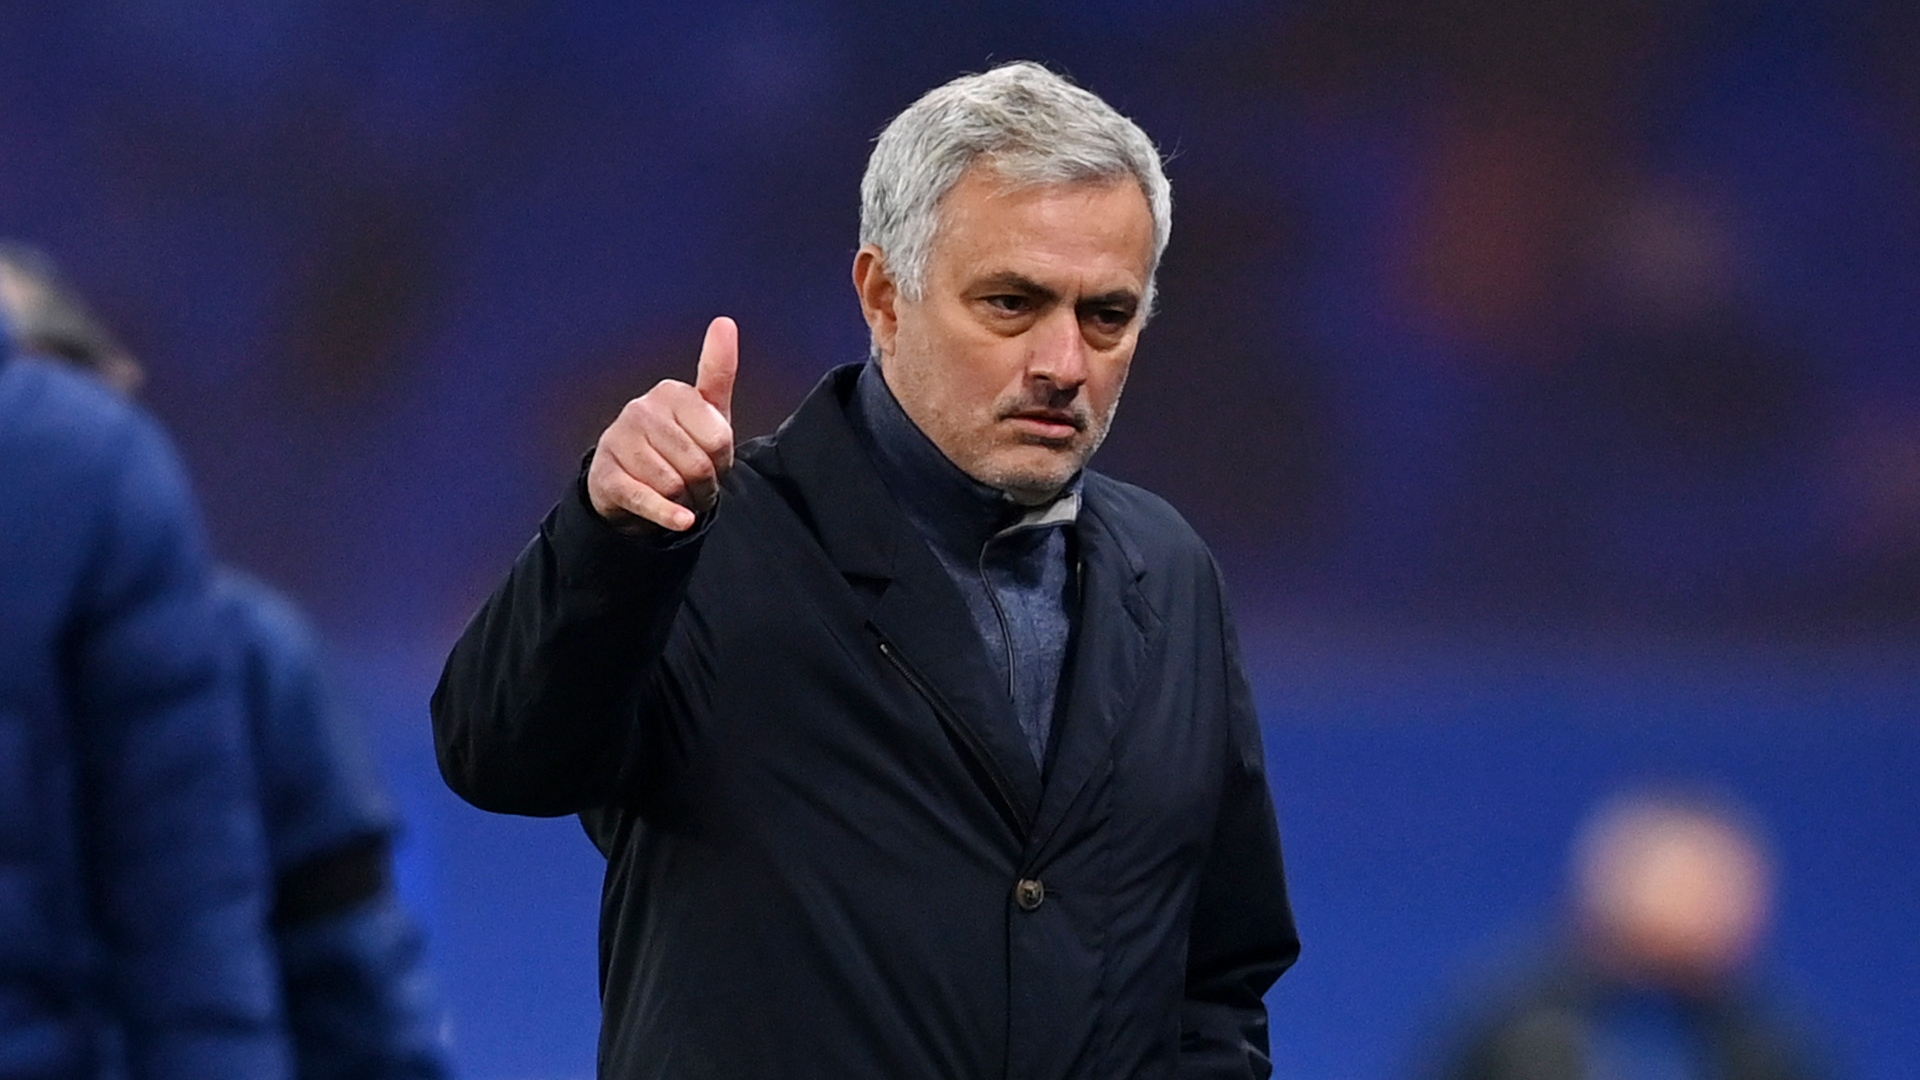 'Amazing' Liverpool still in the title race, says Spurs boss Mourinho